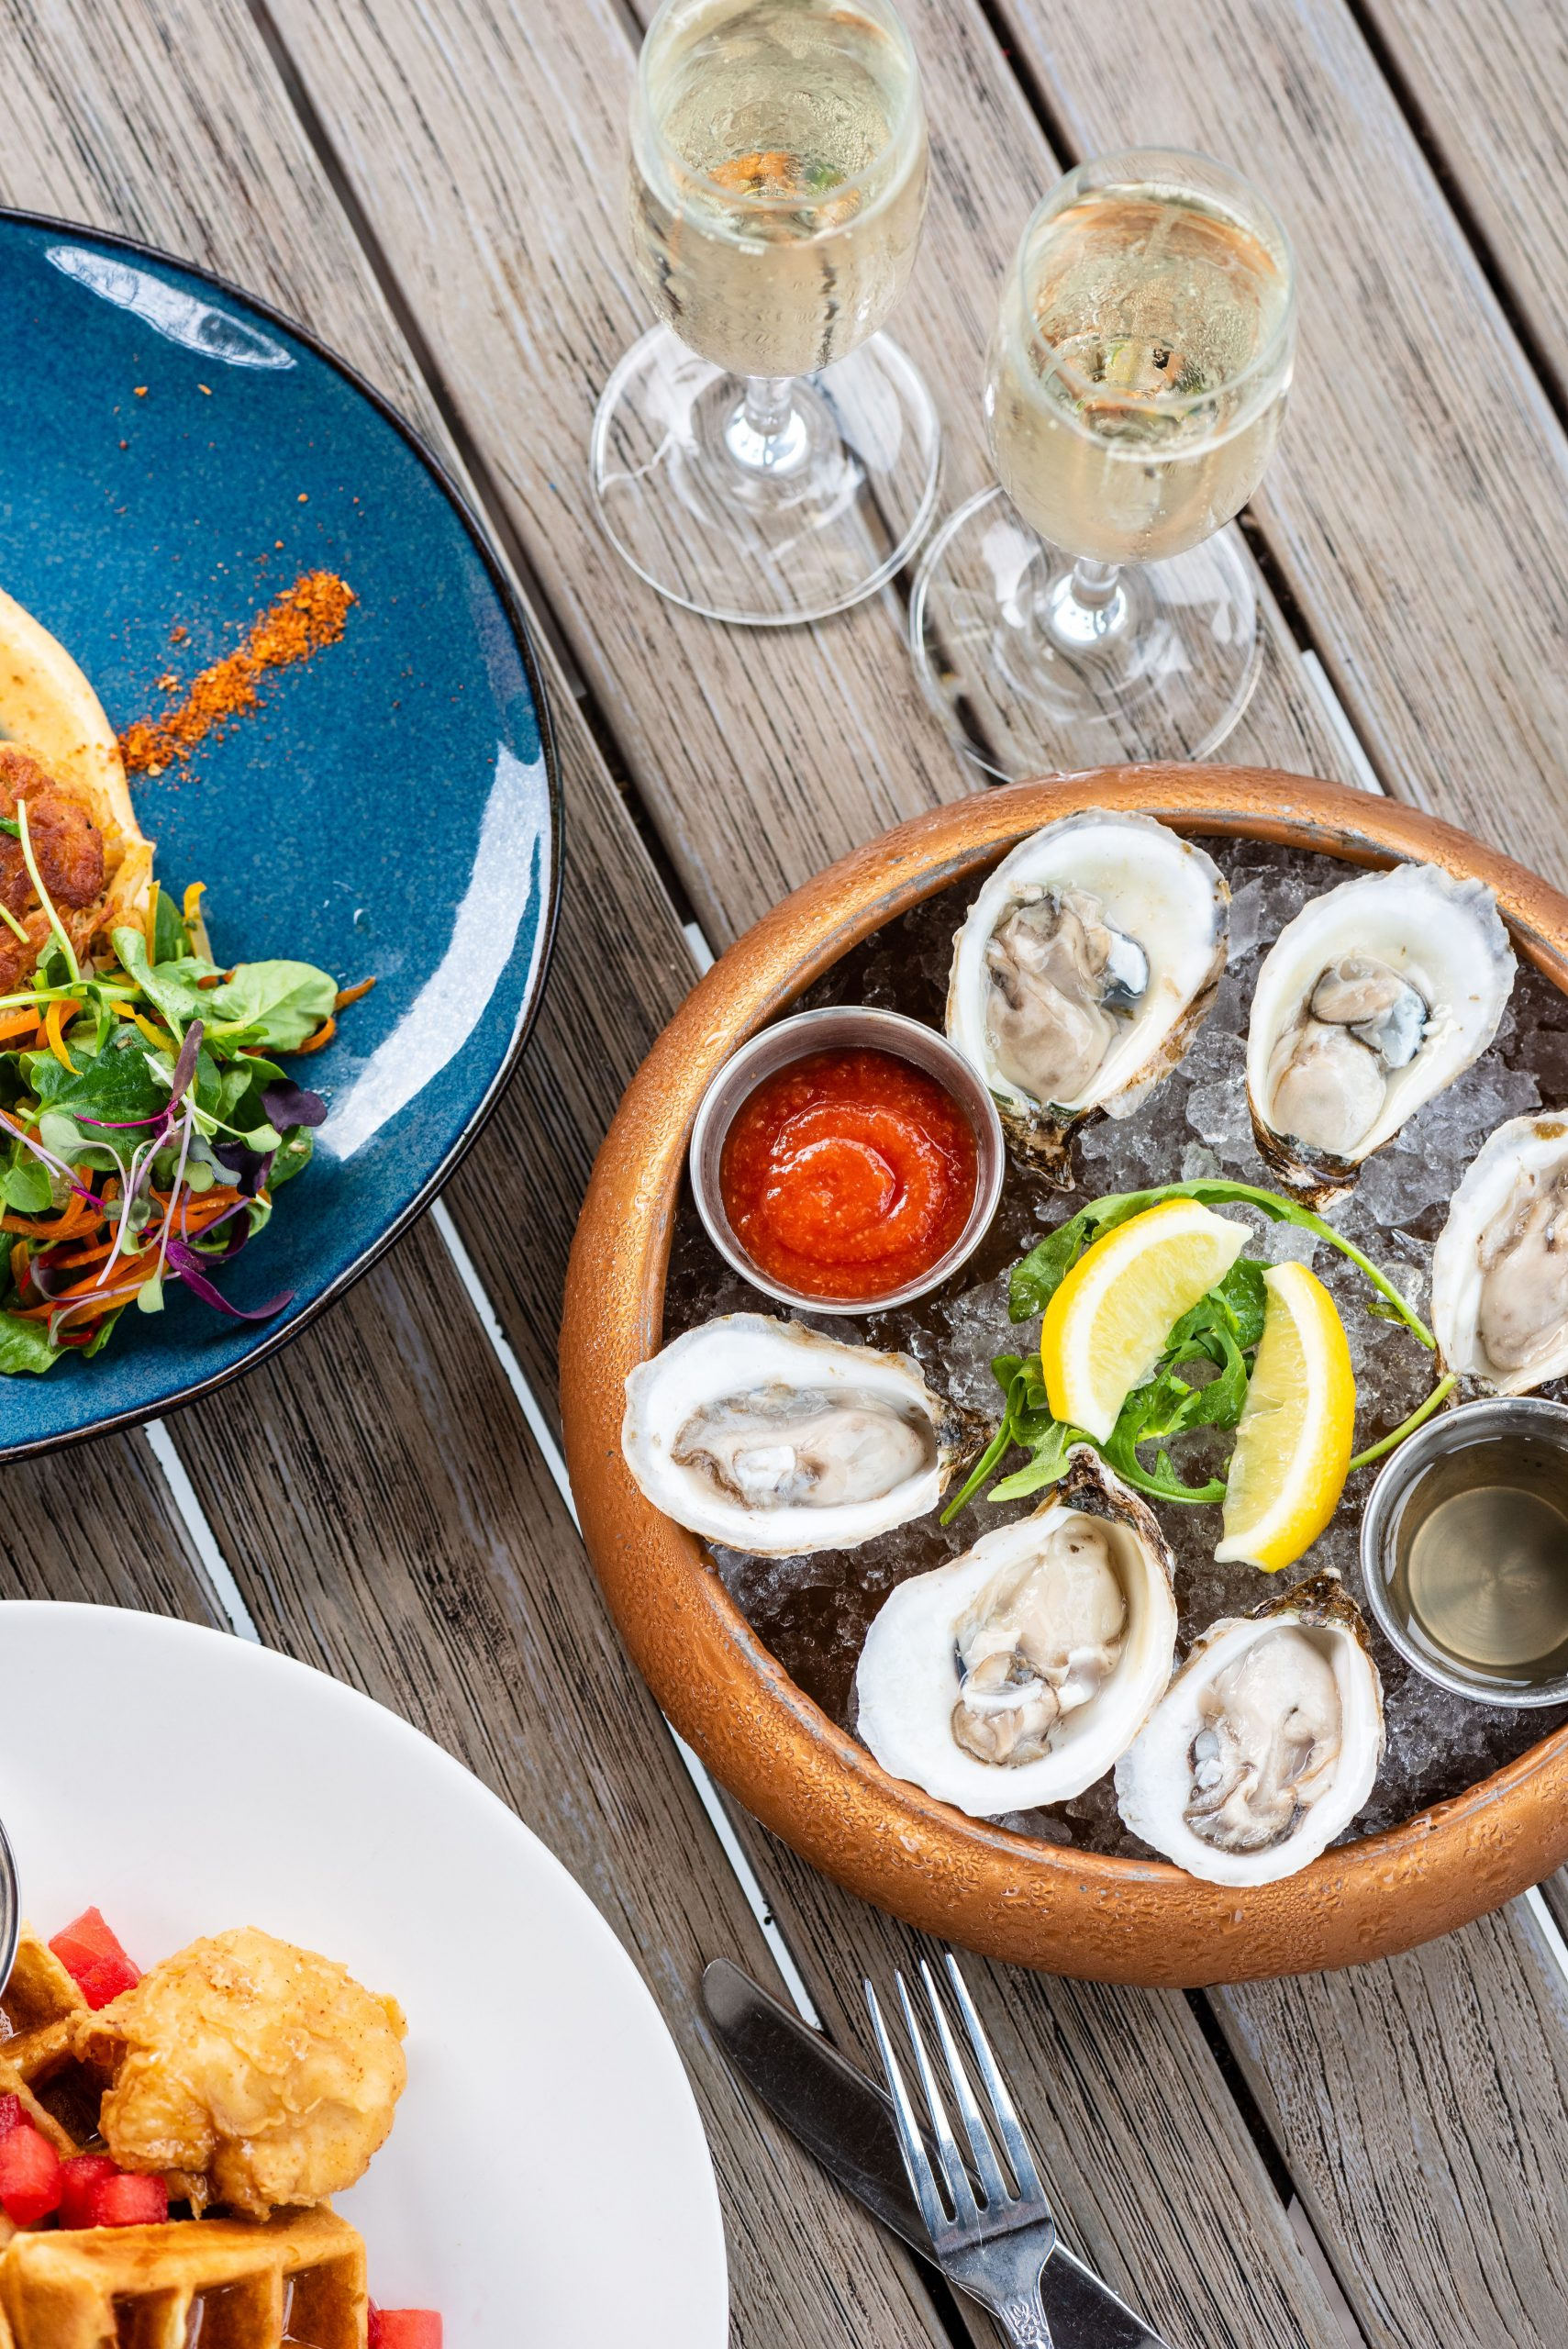 Celebrate Father's Day at these South Florida Restaurants